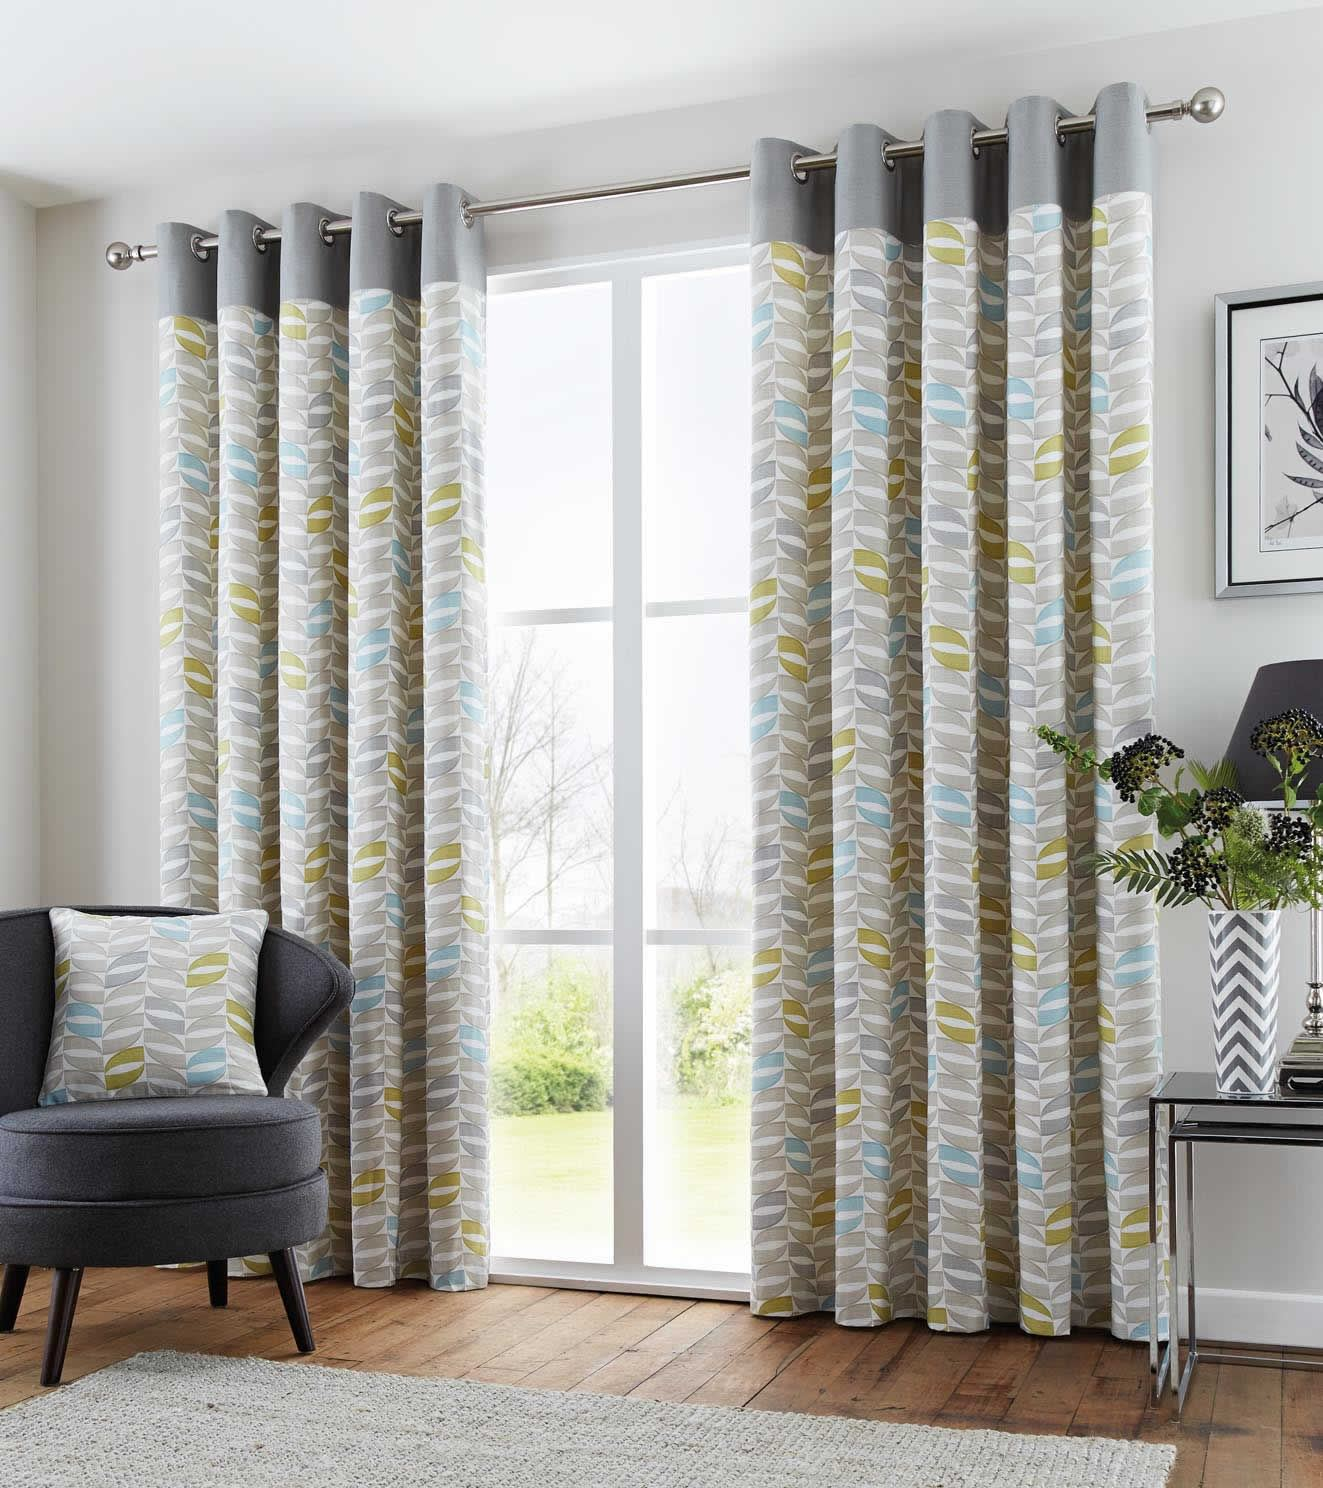 copeland geometric retro lined eyelet curtains ready made. Black Bedroom Furniture Sets. Home Design Ideas